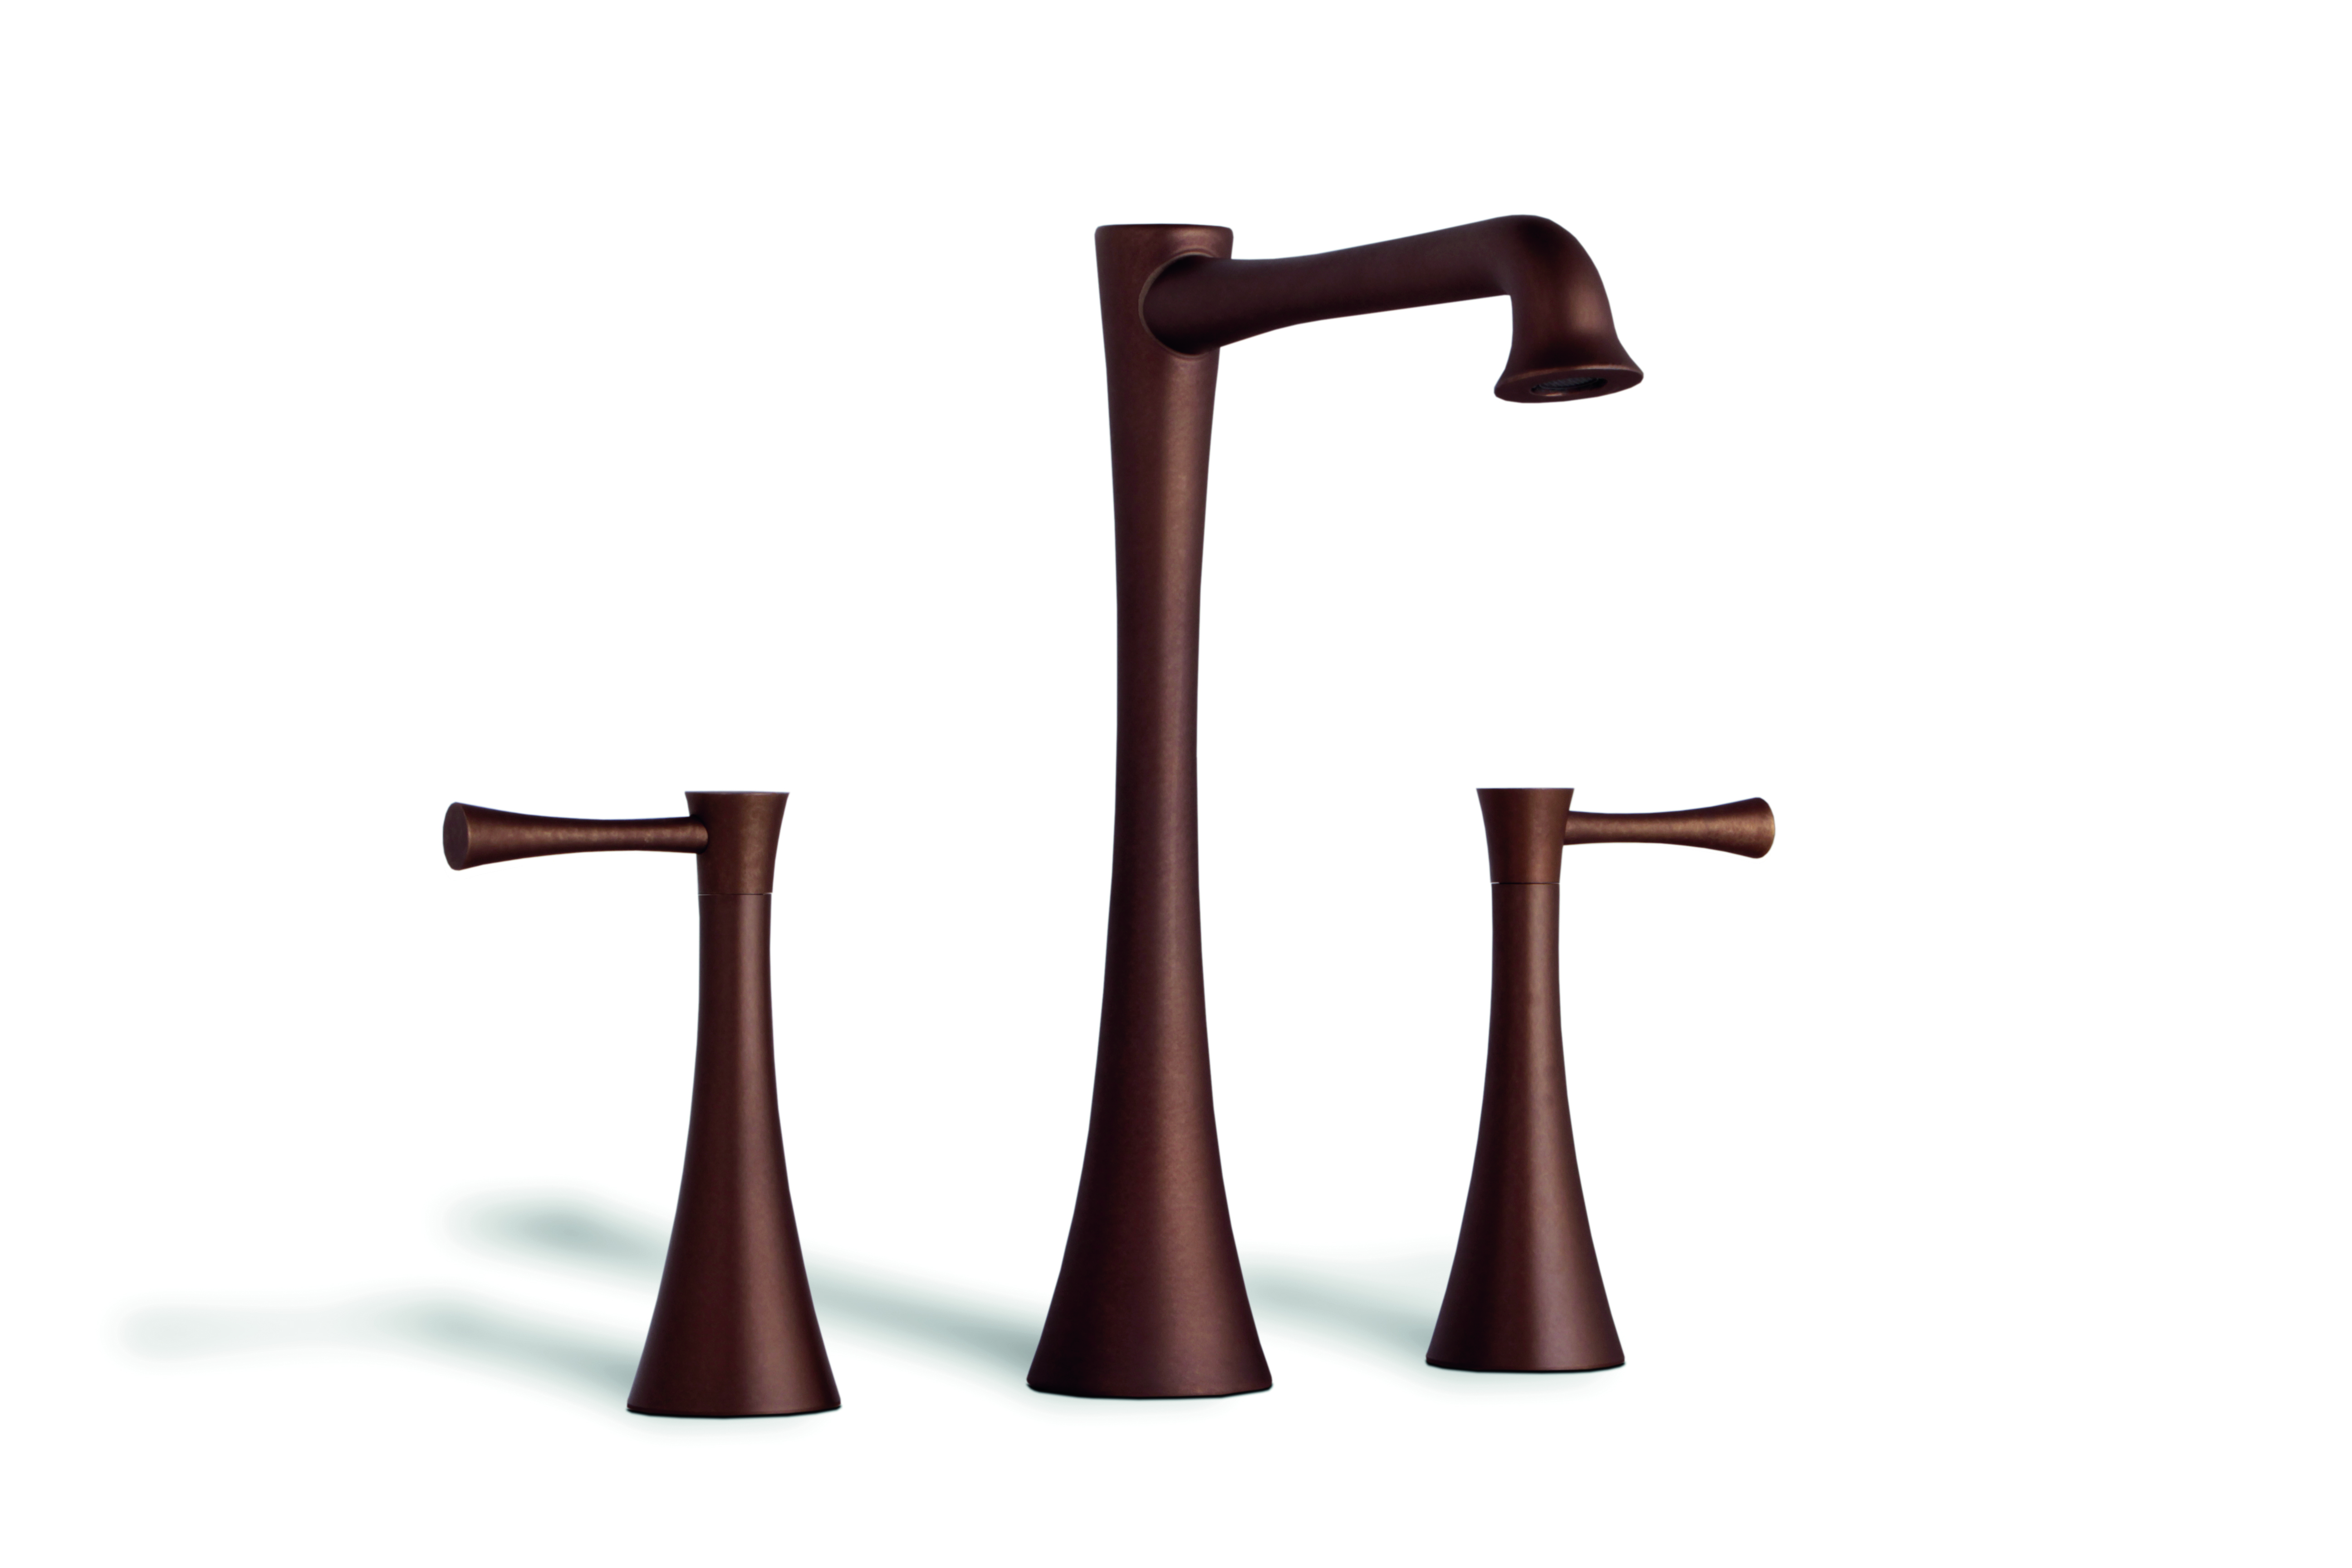 Sophisticated Taps to Enhance your Bathroom  Sophisticated Taps Sophisticated Taps to Enhance your Bathroom timeless three hole mixer tap 1 HR 1